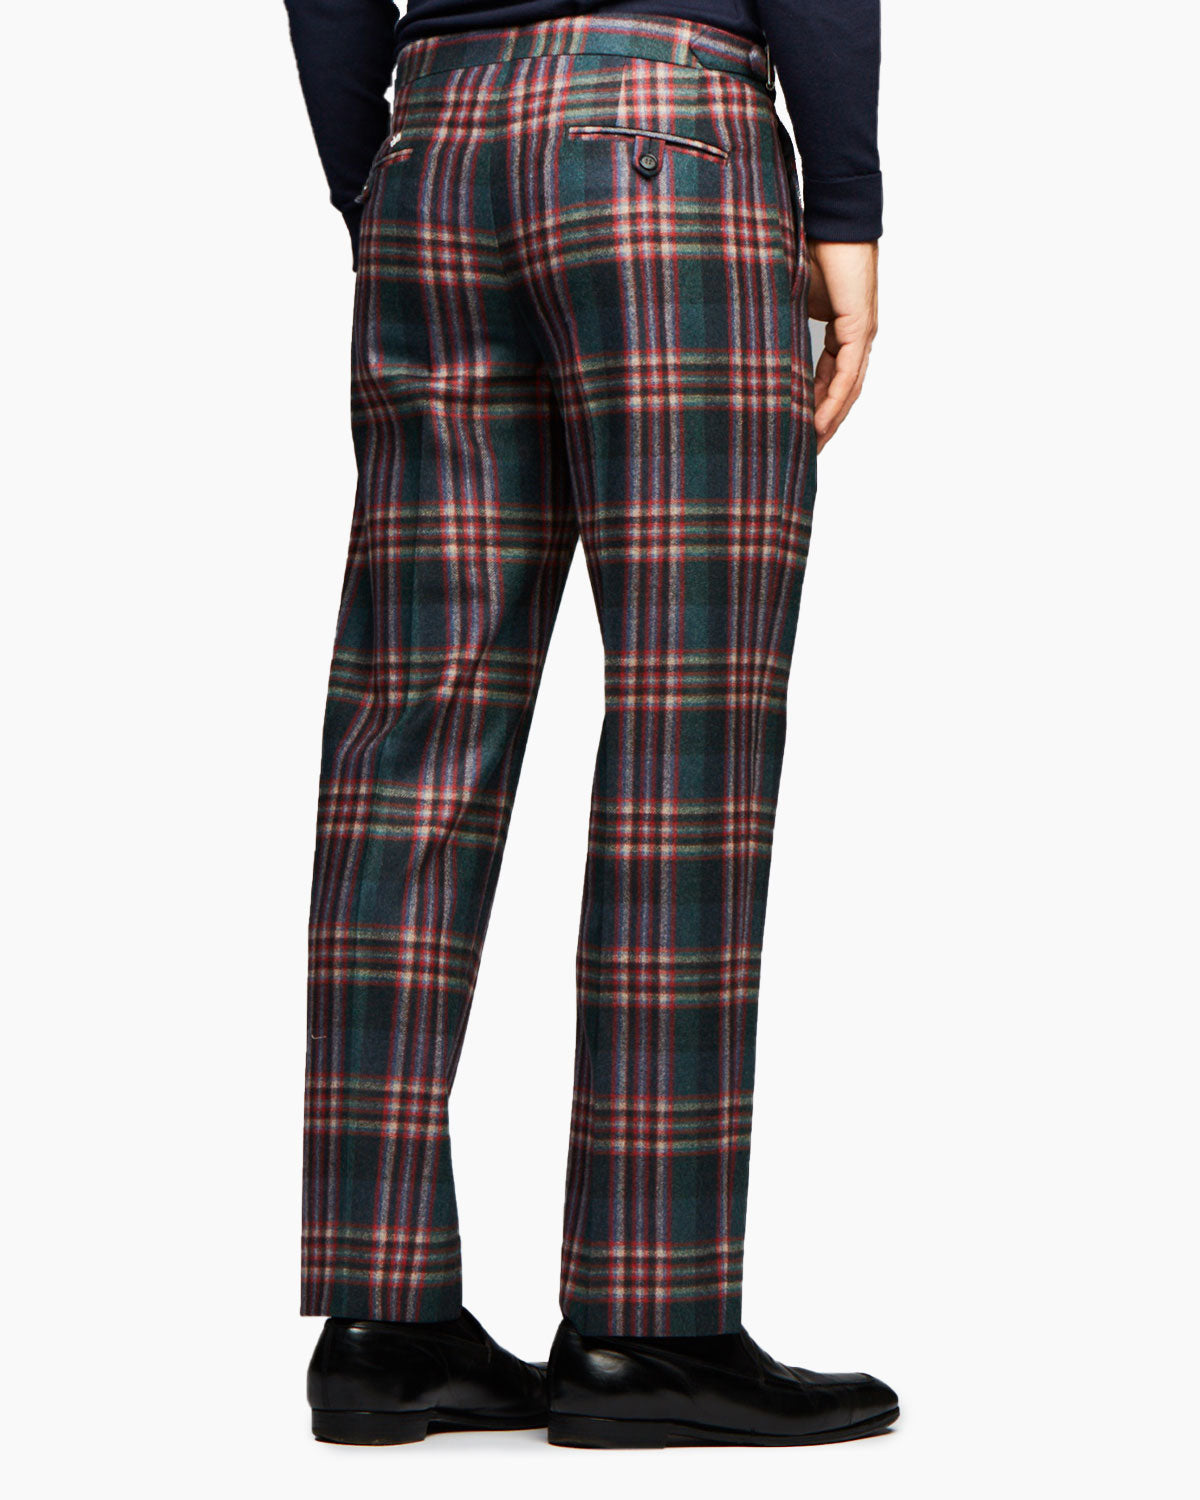 Super 120s Wool Flannel, Plaid